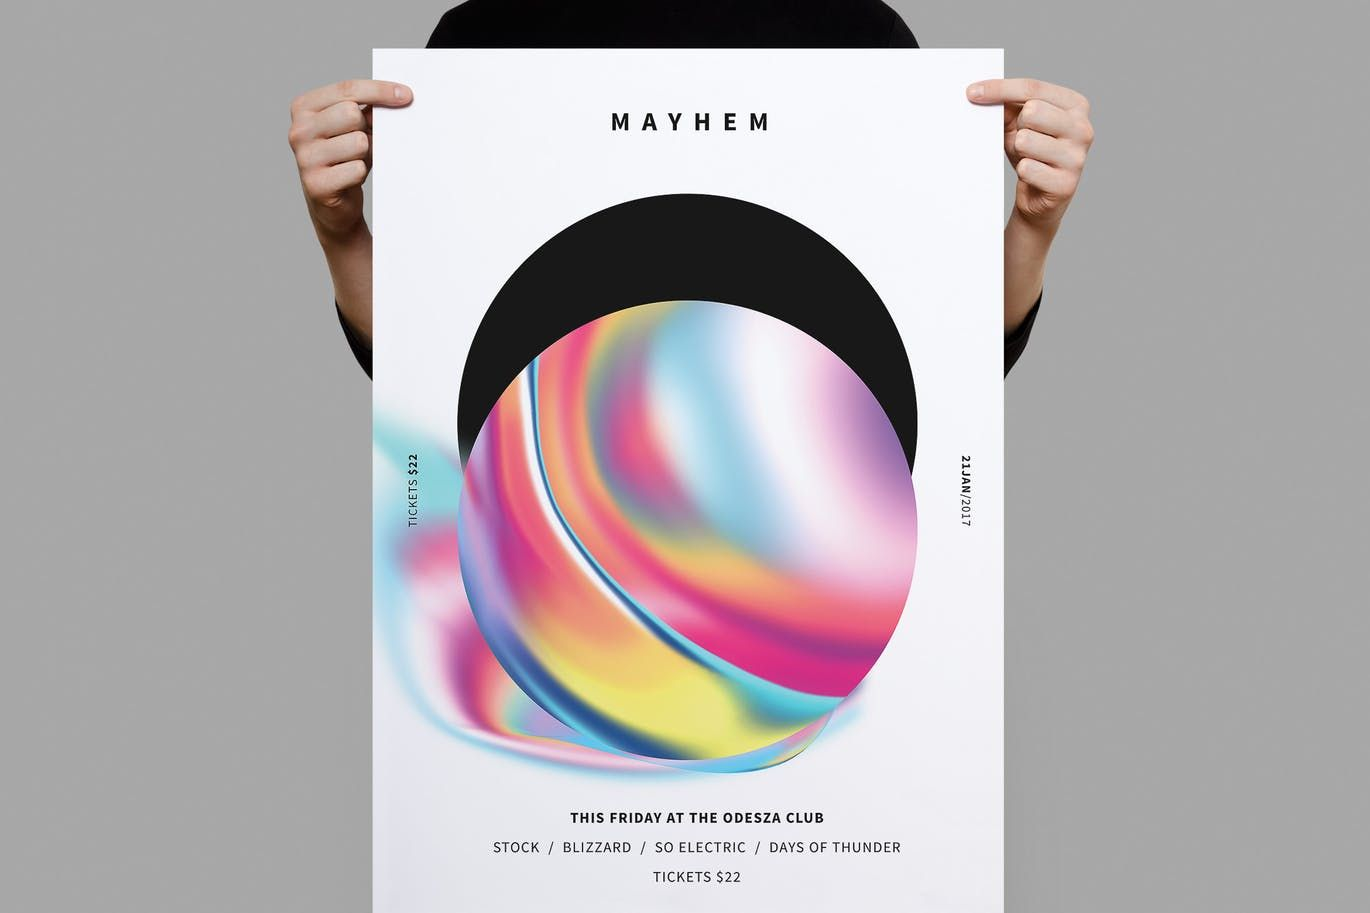 Mayhem Poster / Flyer By Samnivala On Envato Elements